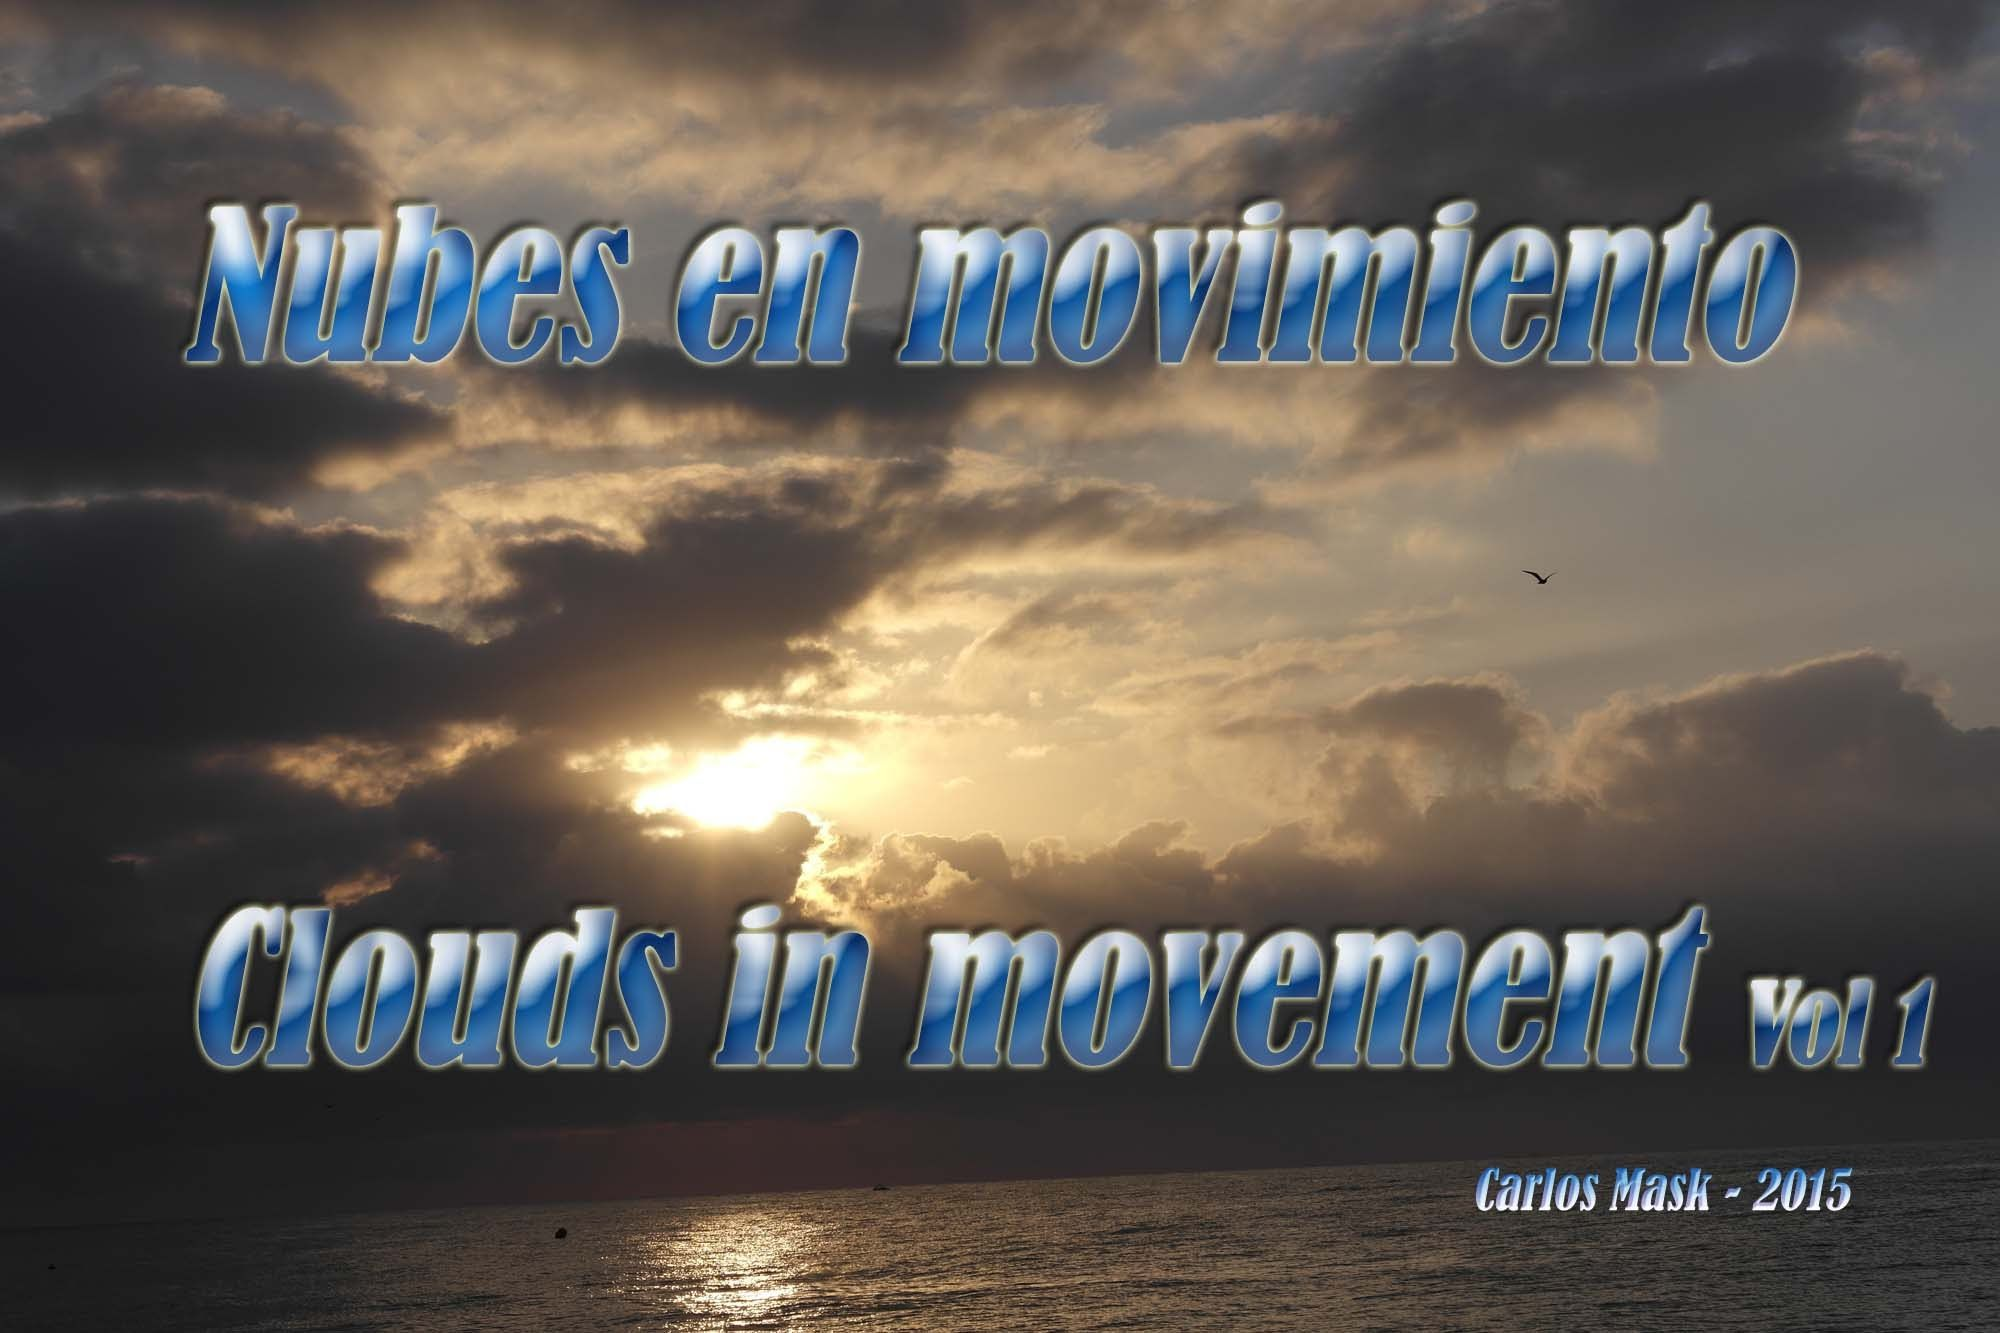 Nubes en movimiento - Clouds in movement Full HD 1080p 2015 Carlos Mask